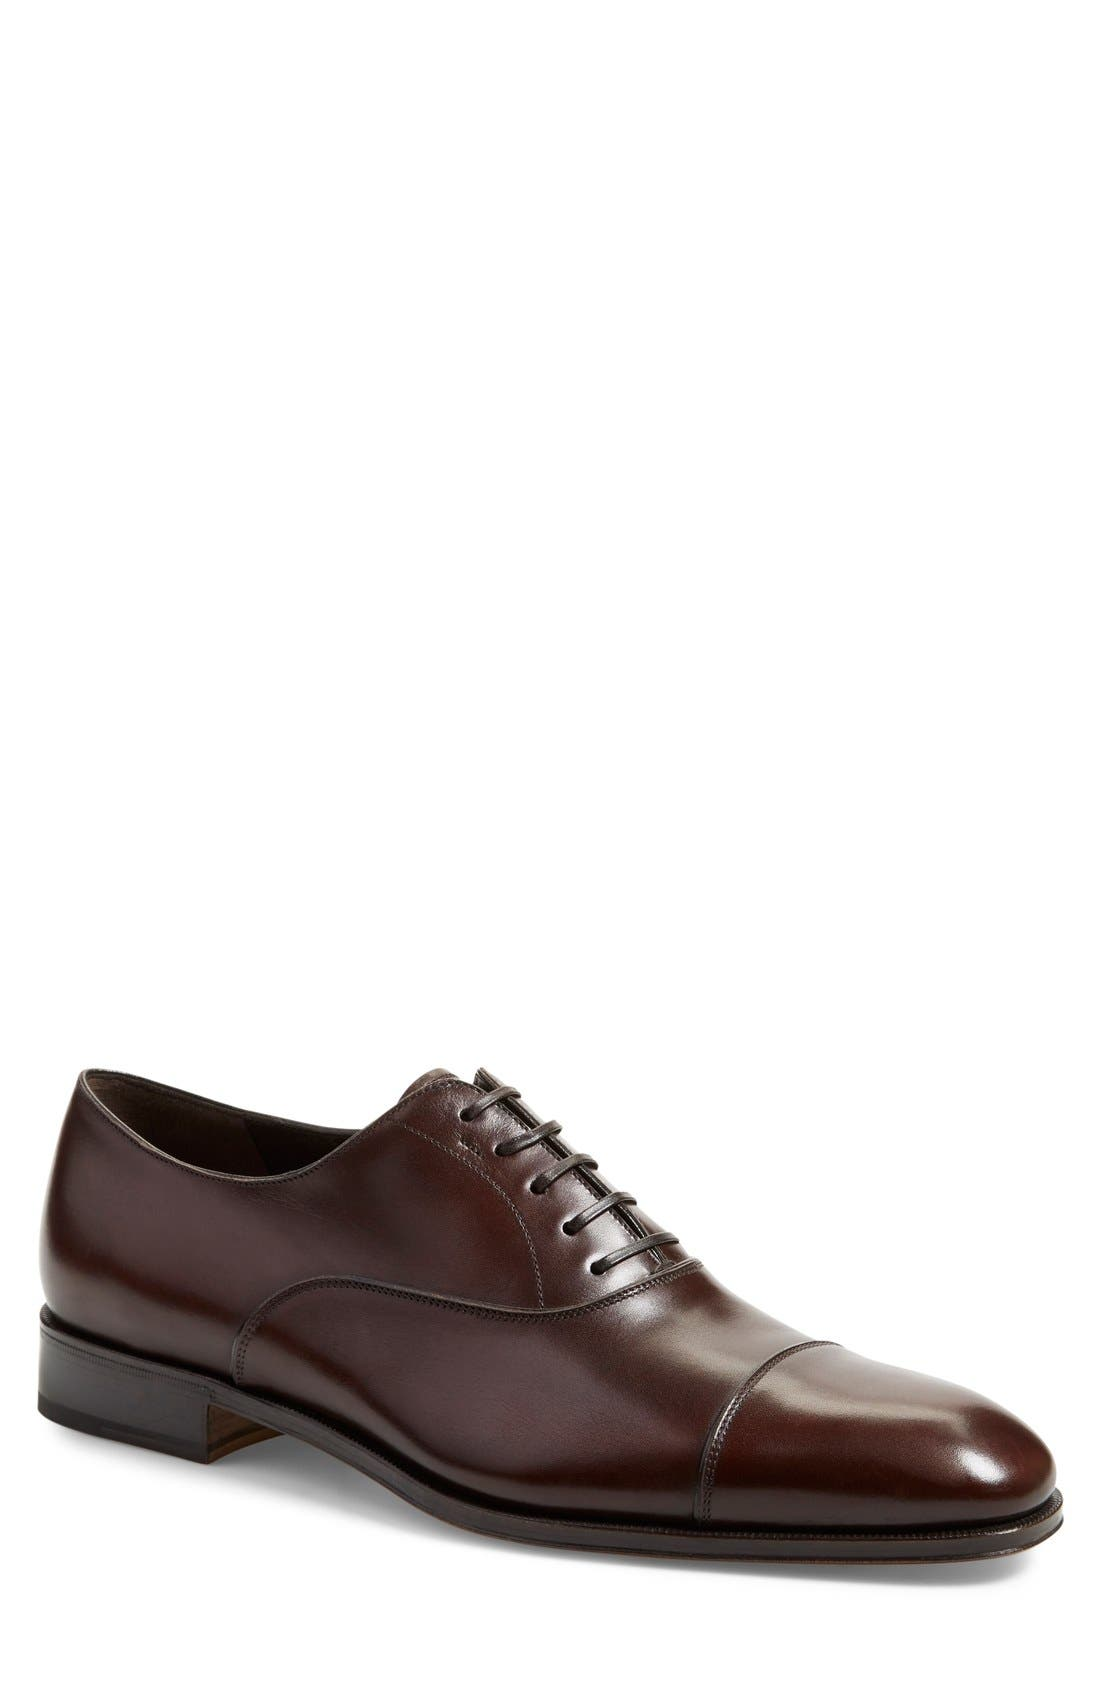 Luce Cap Toe Oxford,                         Main,                         color, 200